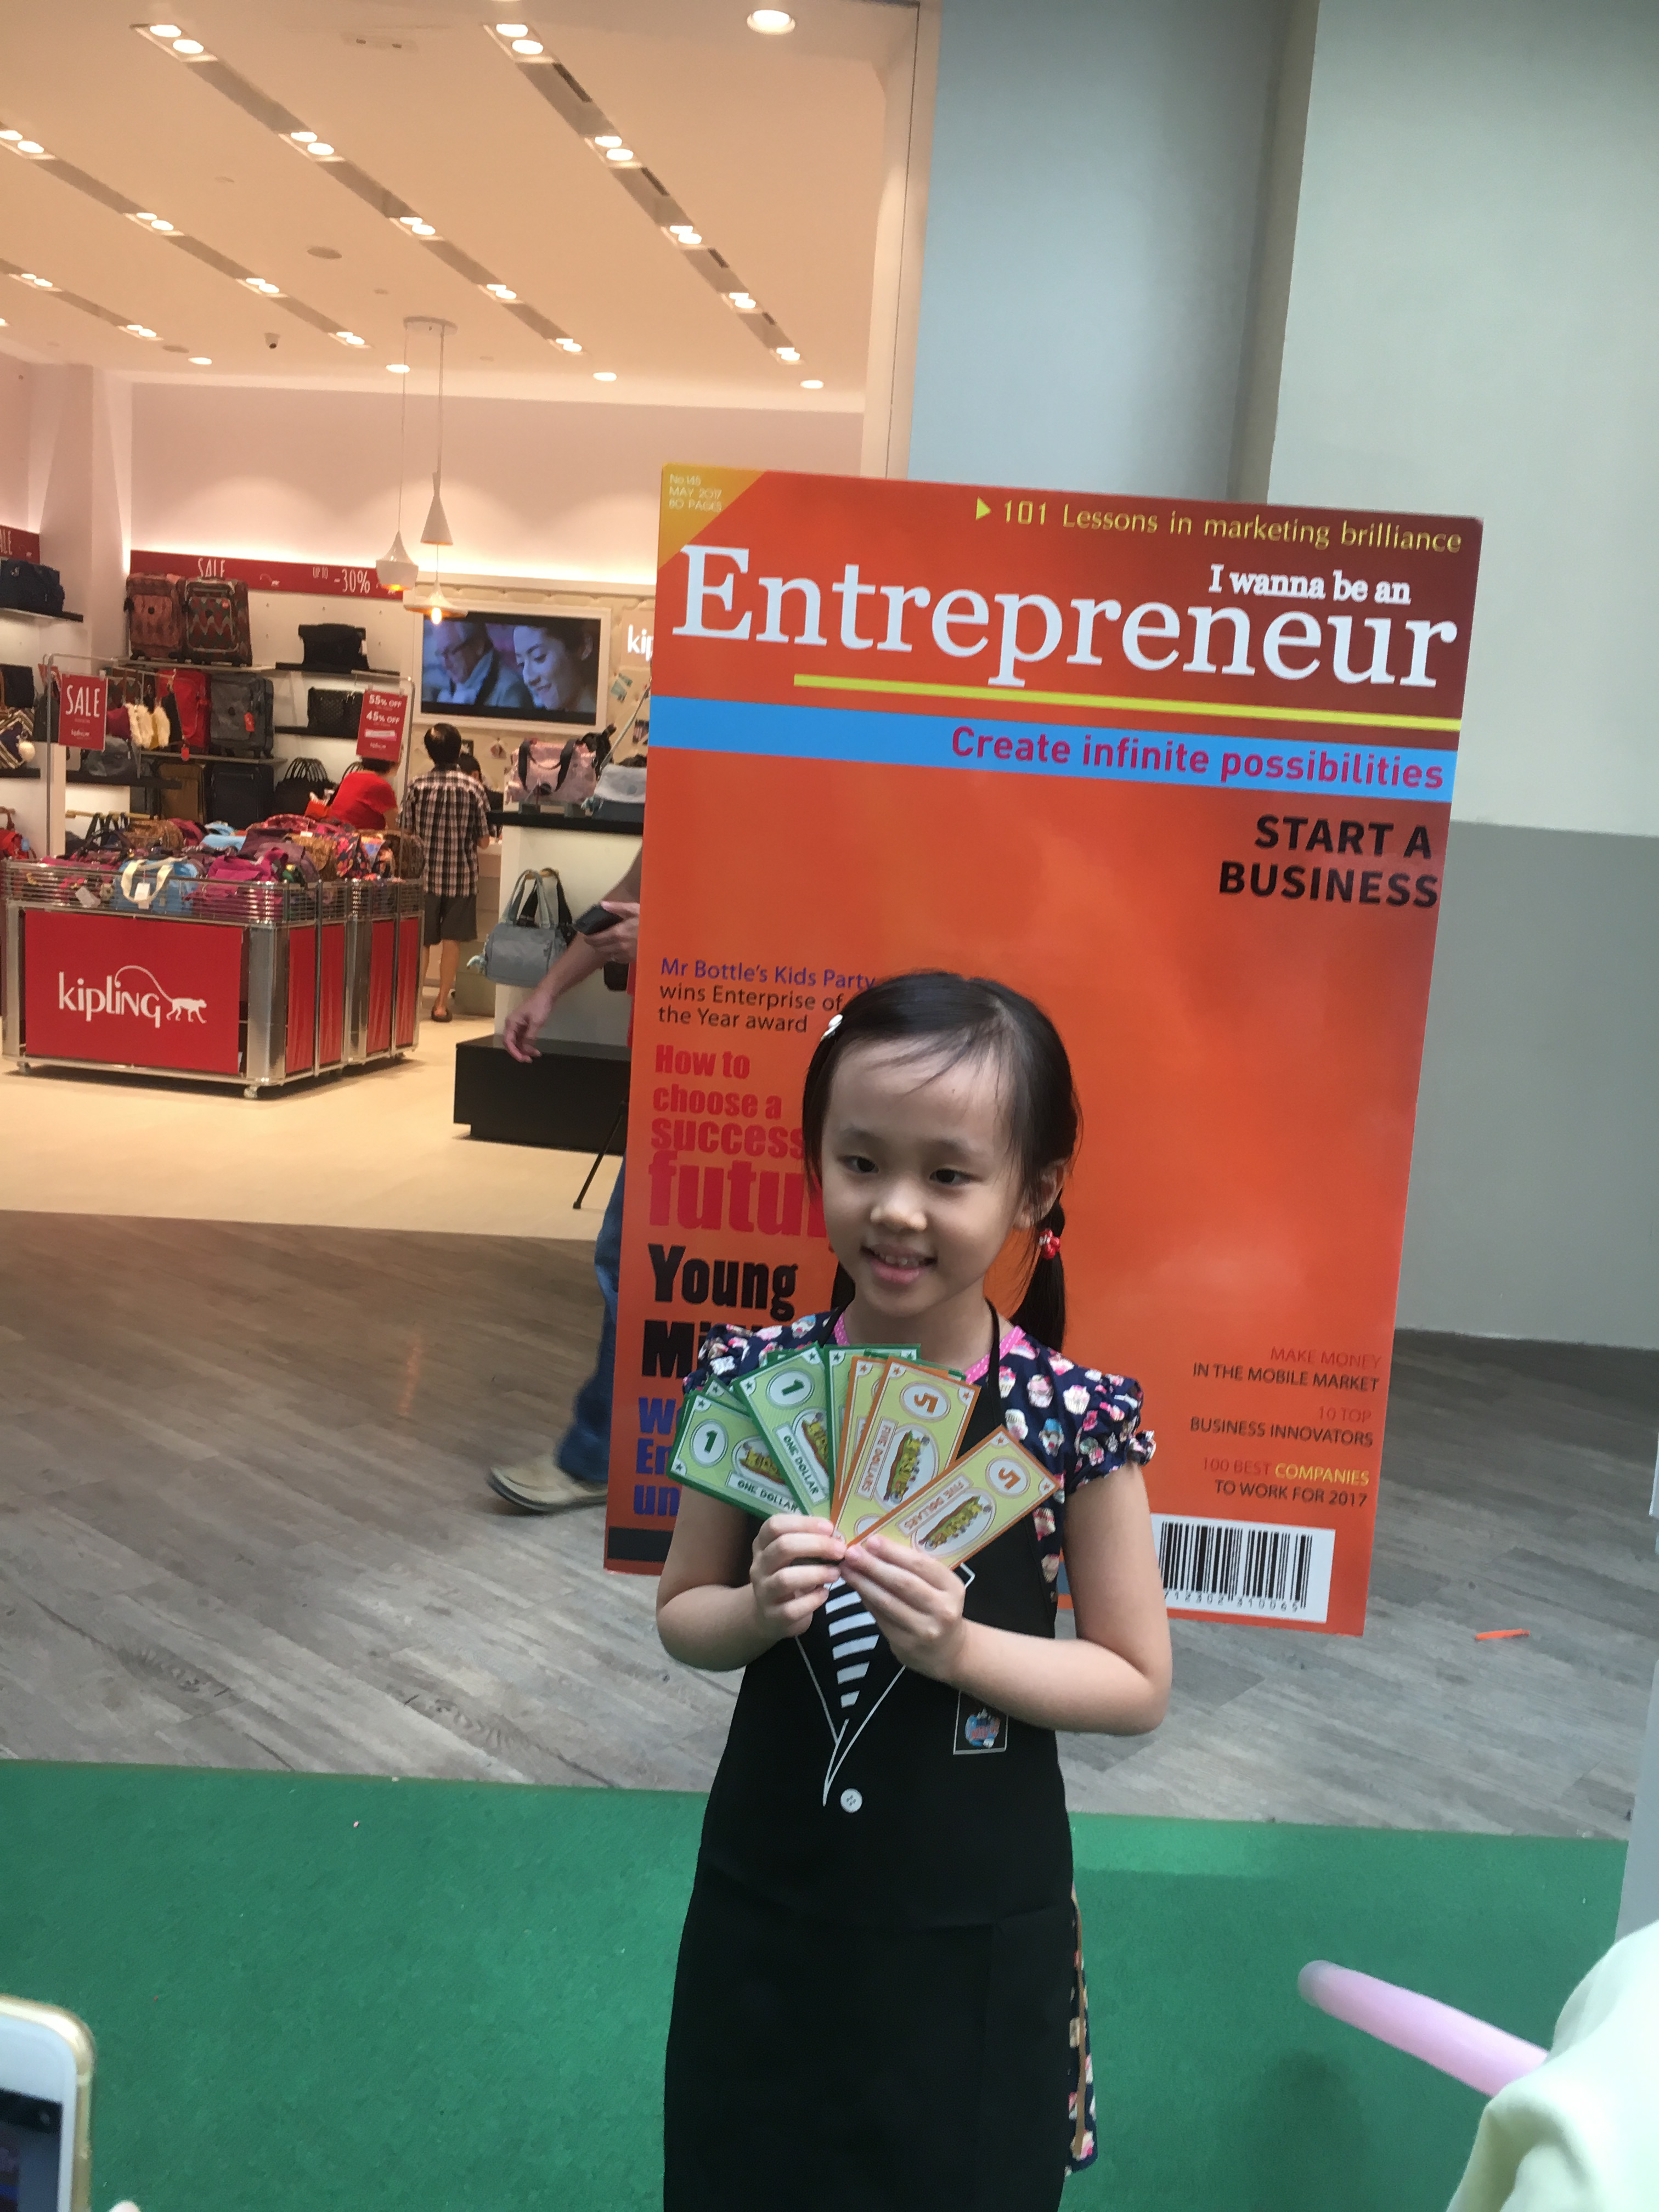 Case Study: Enterpreneurship Event for Kids@Work